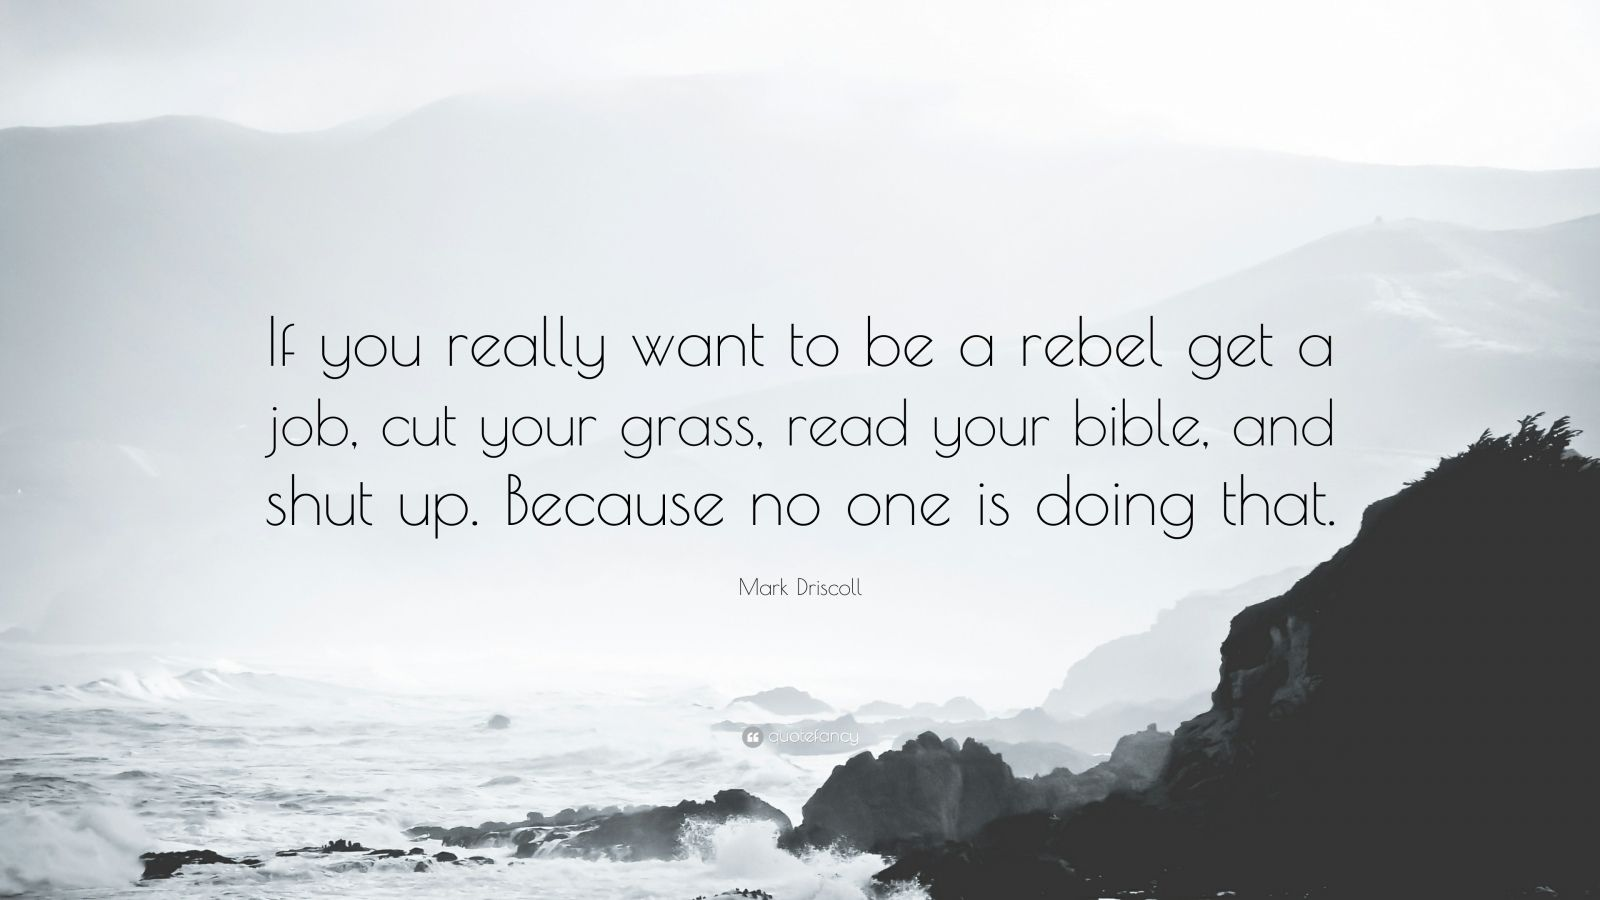 mark driscoll quotes quotefancy mark driscoll quote if you really want to be a rebel get a job